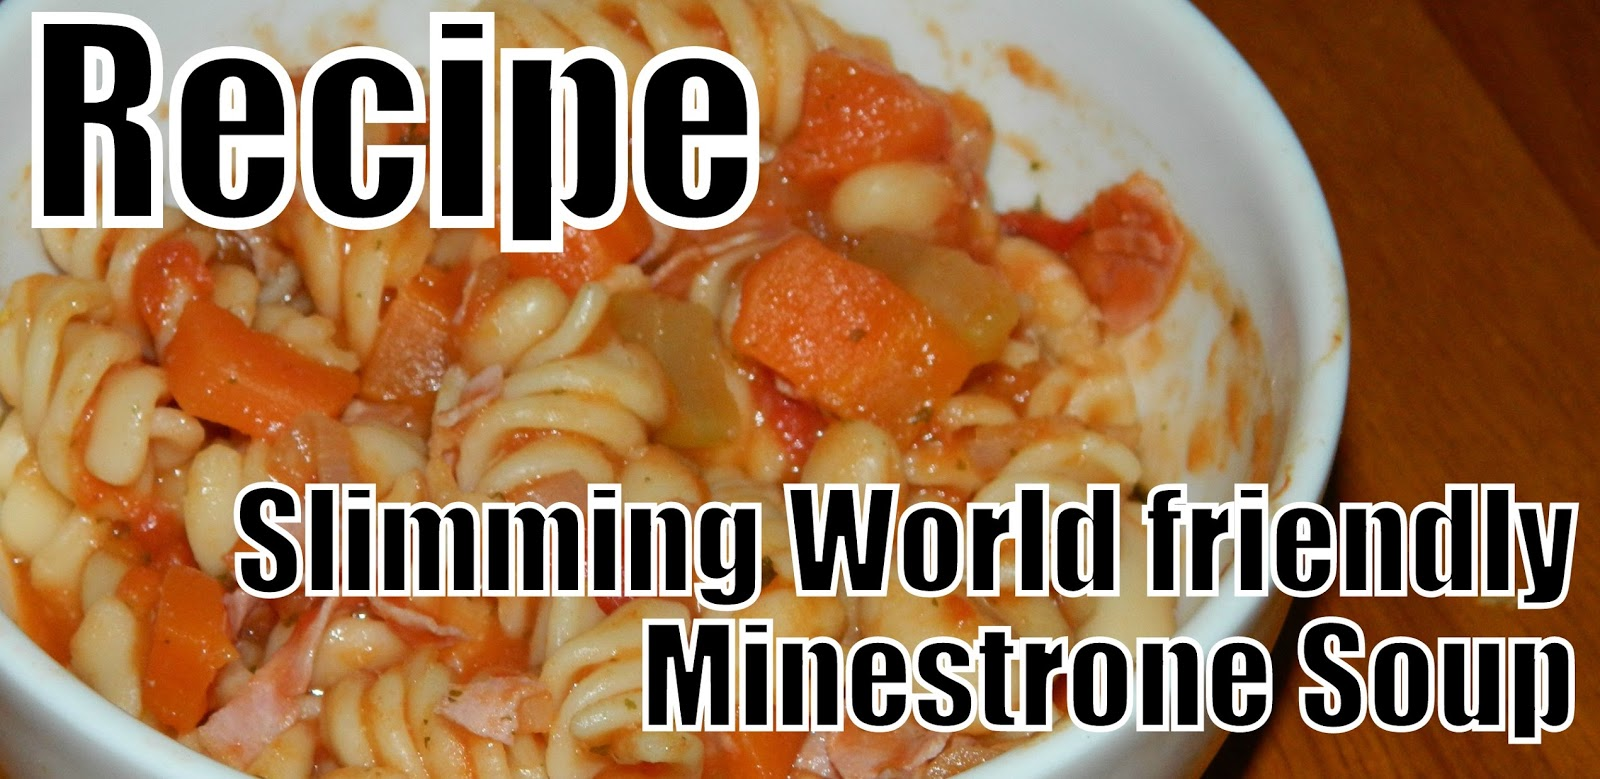 Recipe Slimming World Minestrone Soup